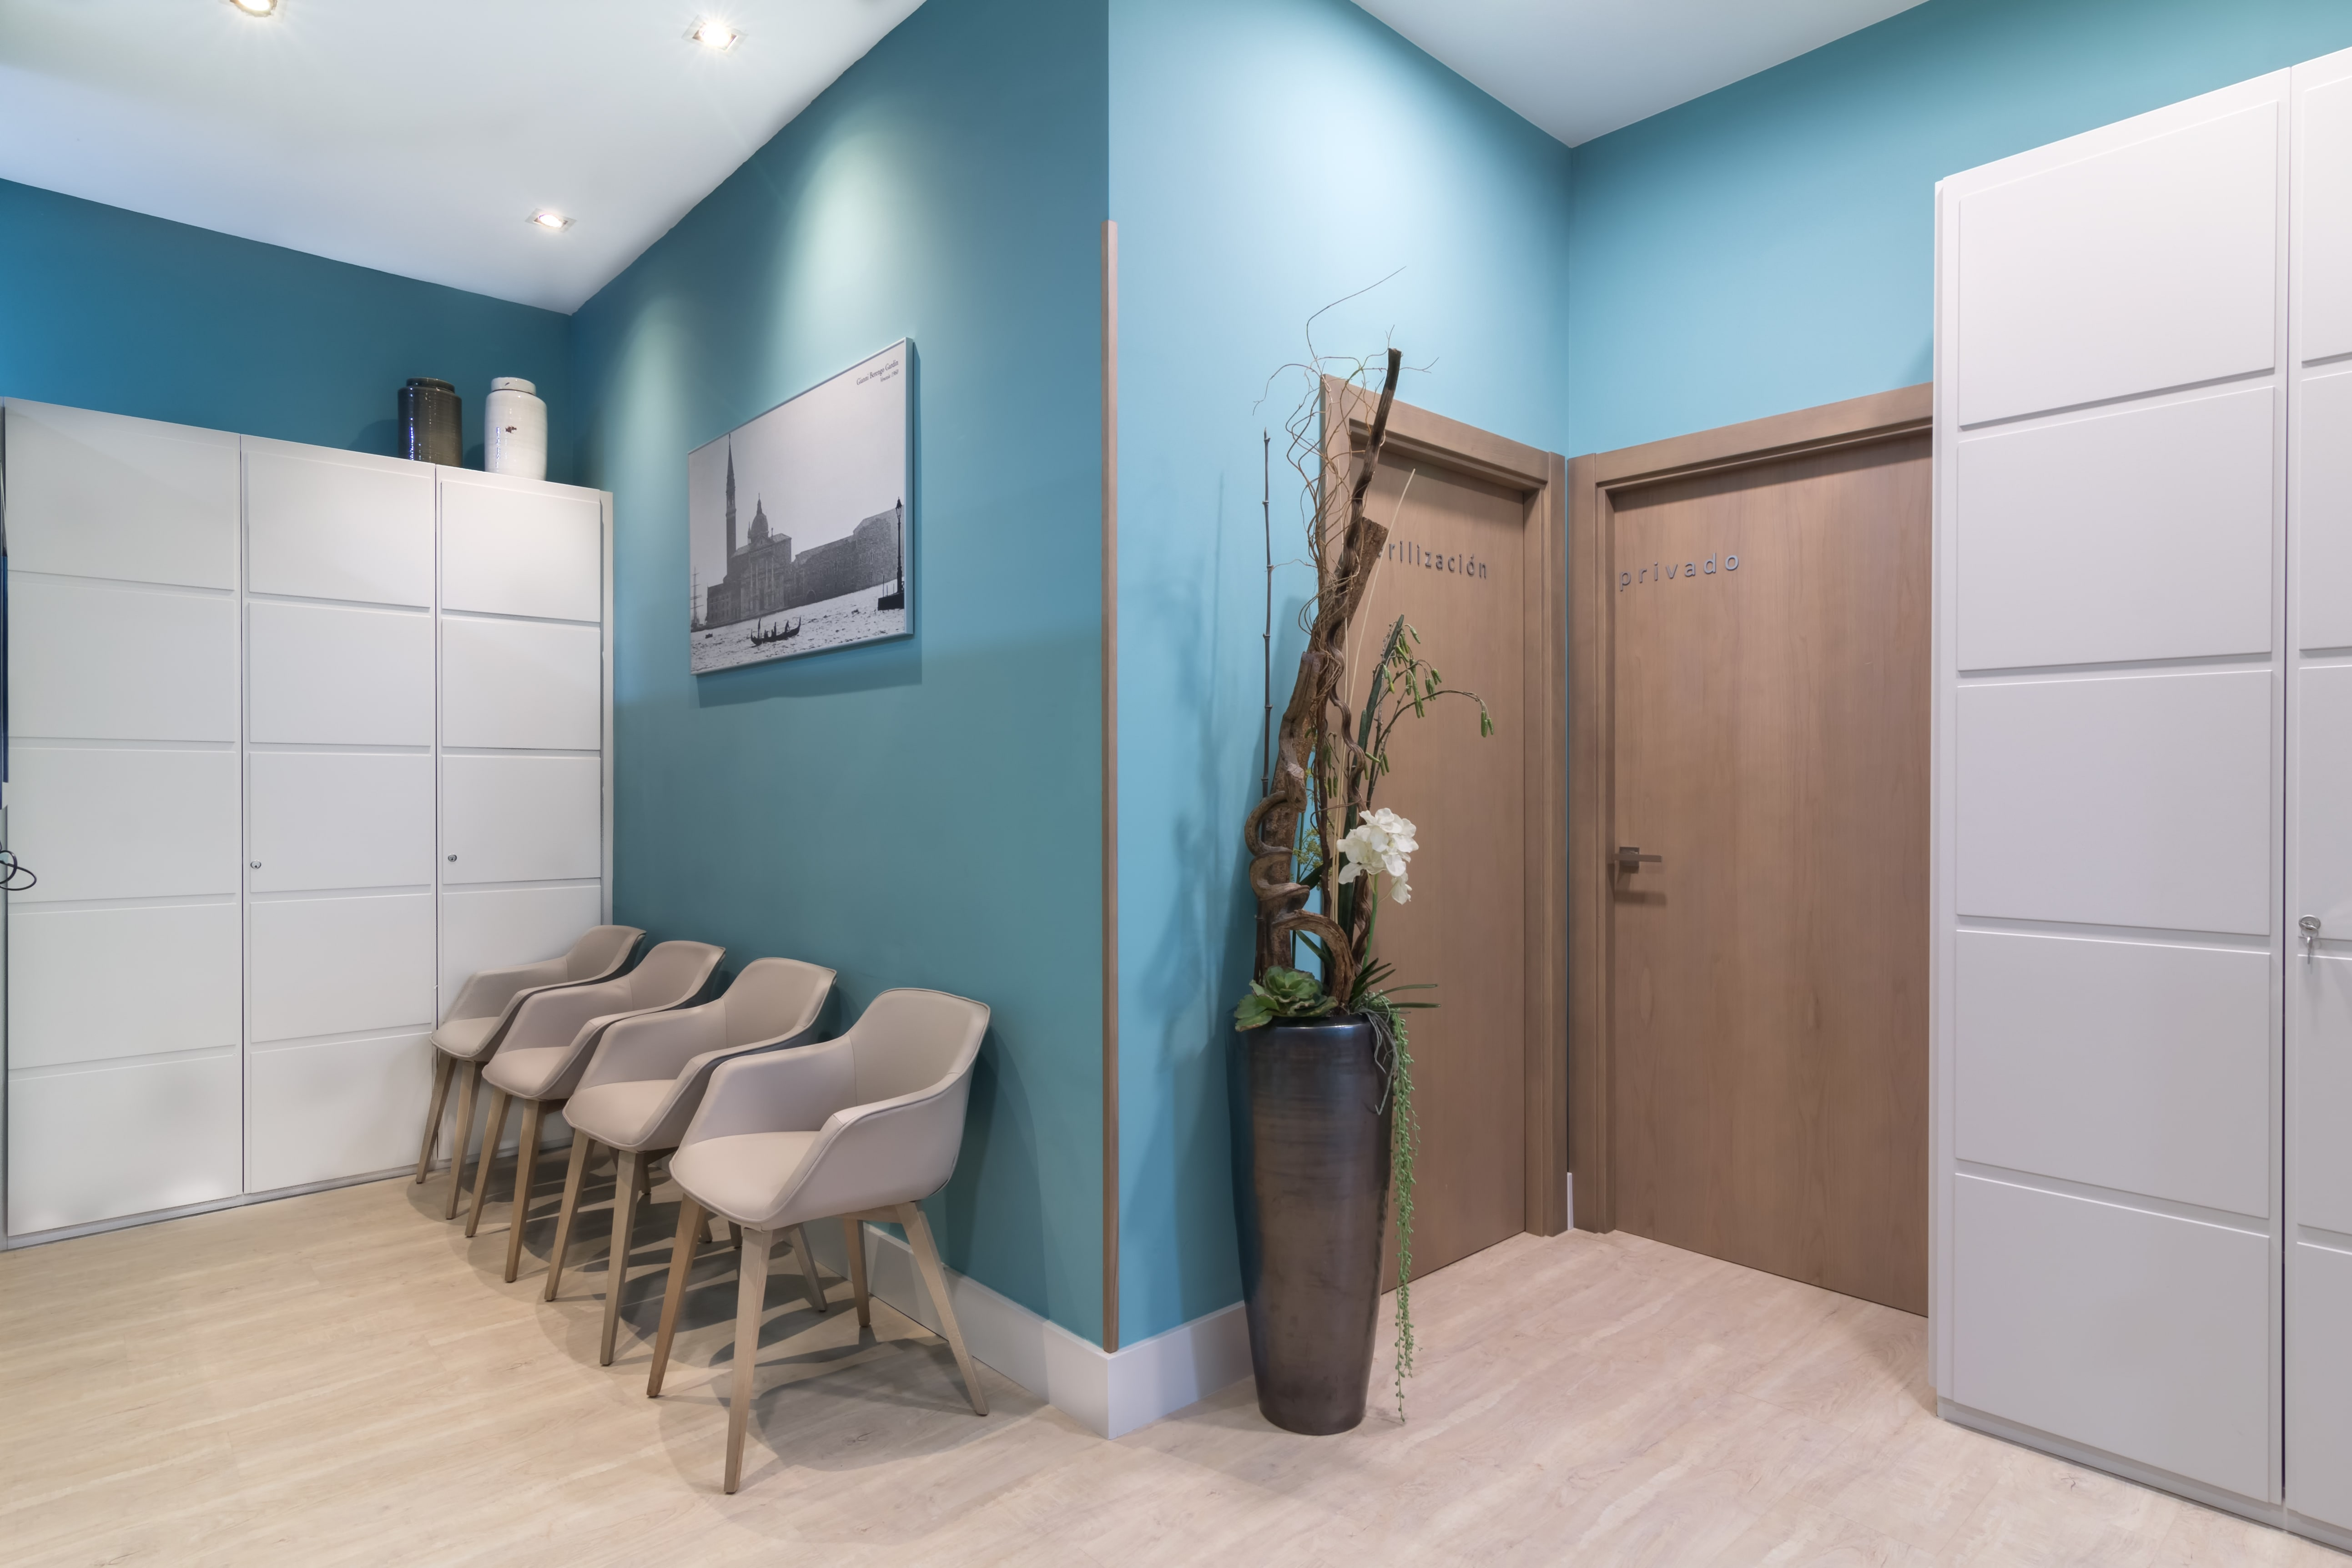 Decoración de clínica dental en Bilbao